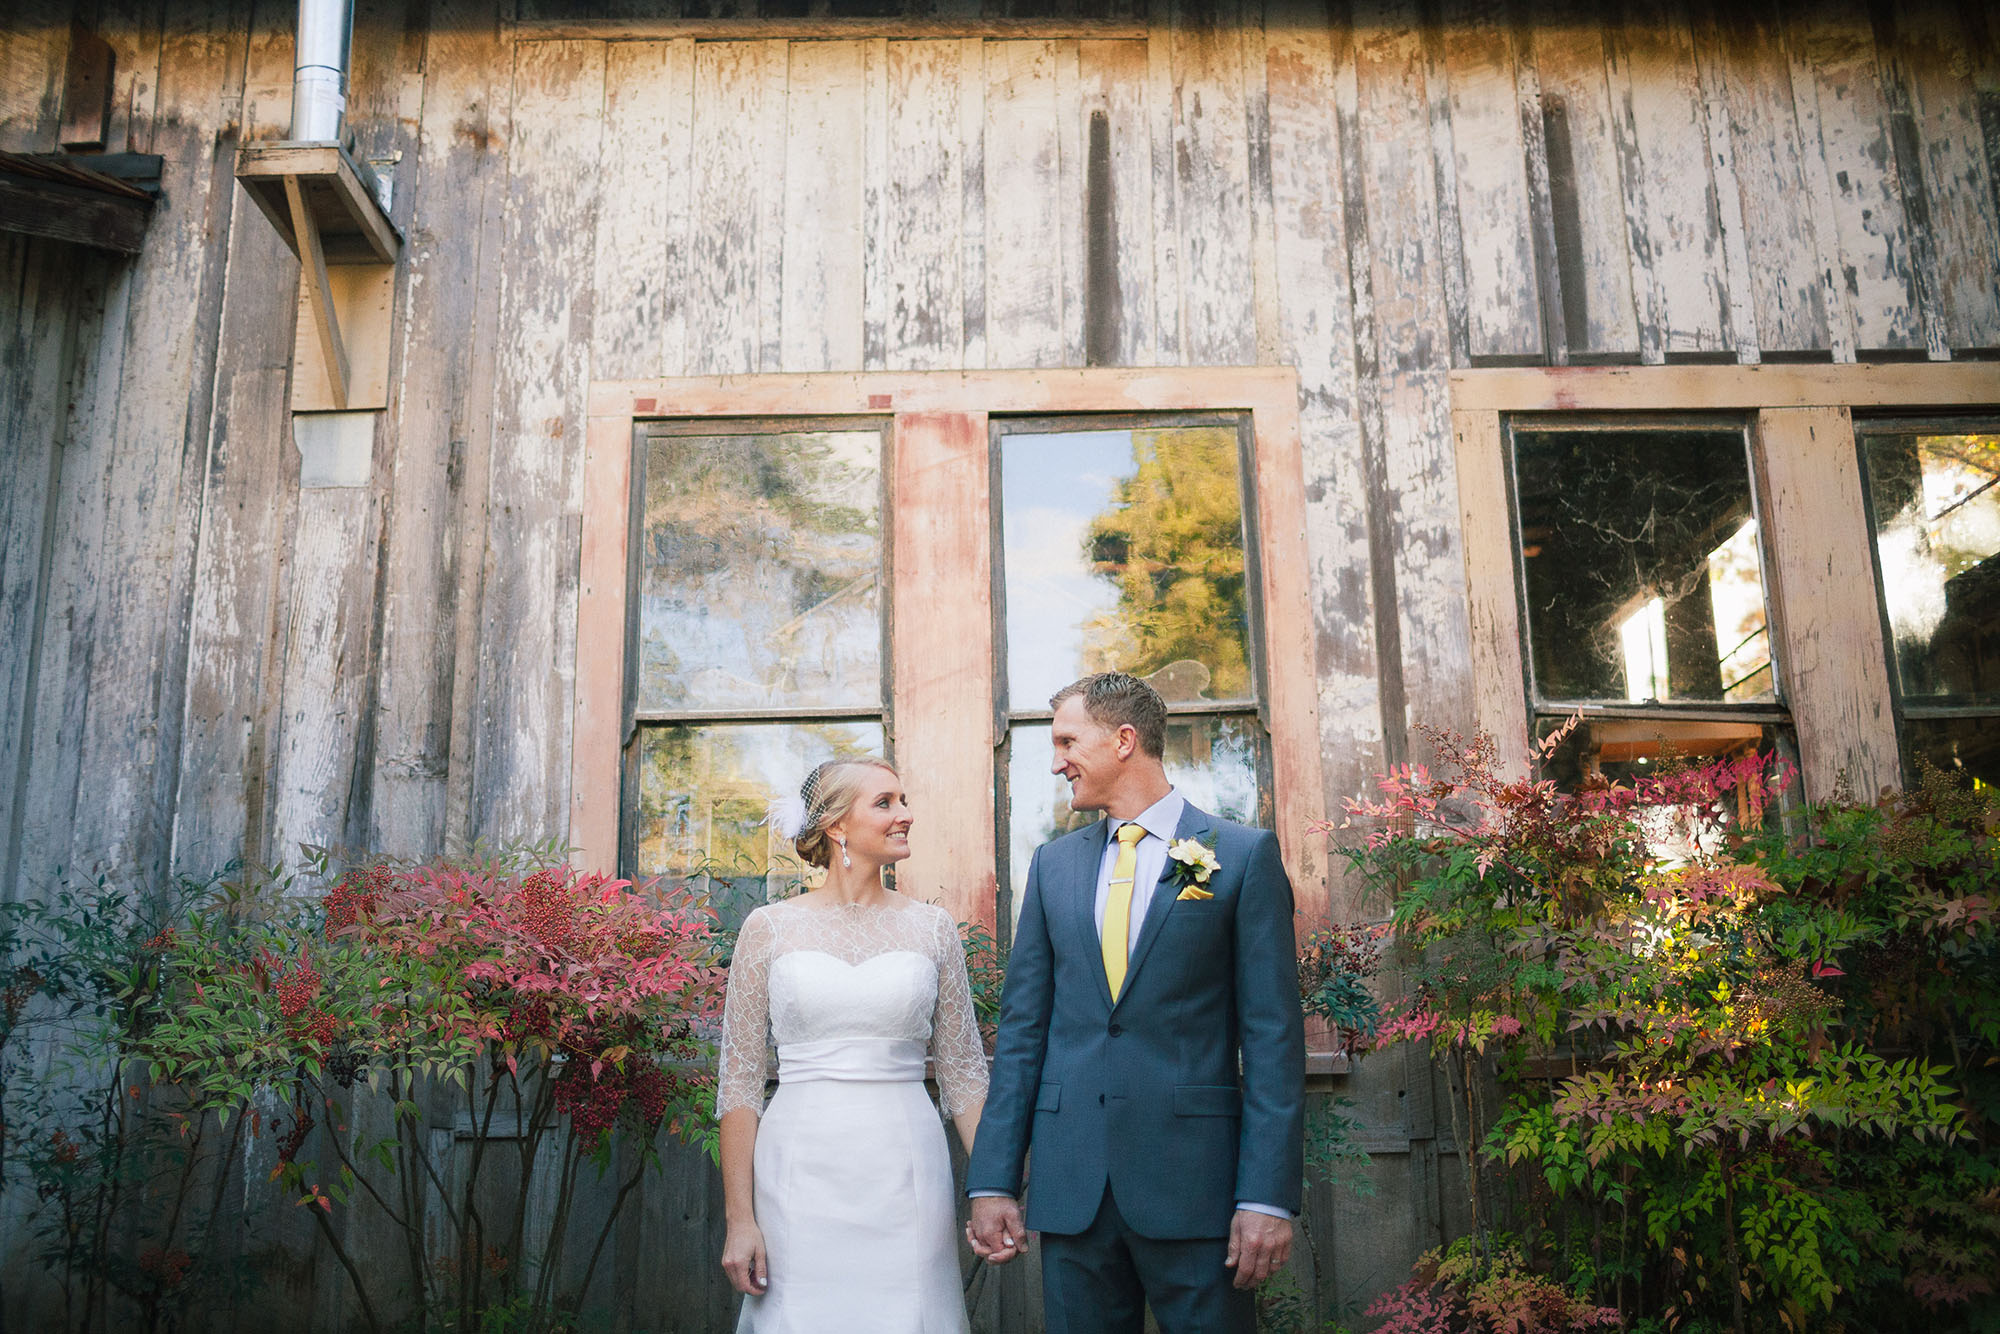 beautiful bride in her white wedding dress gown holds hands with her handsome husband in his tuxedo tux suit as they look at each other and smile in front of a rustic wood barn at their allied arts guild wedding venue